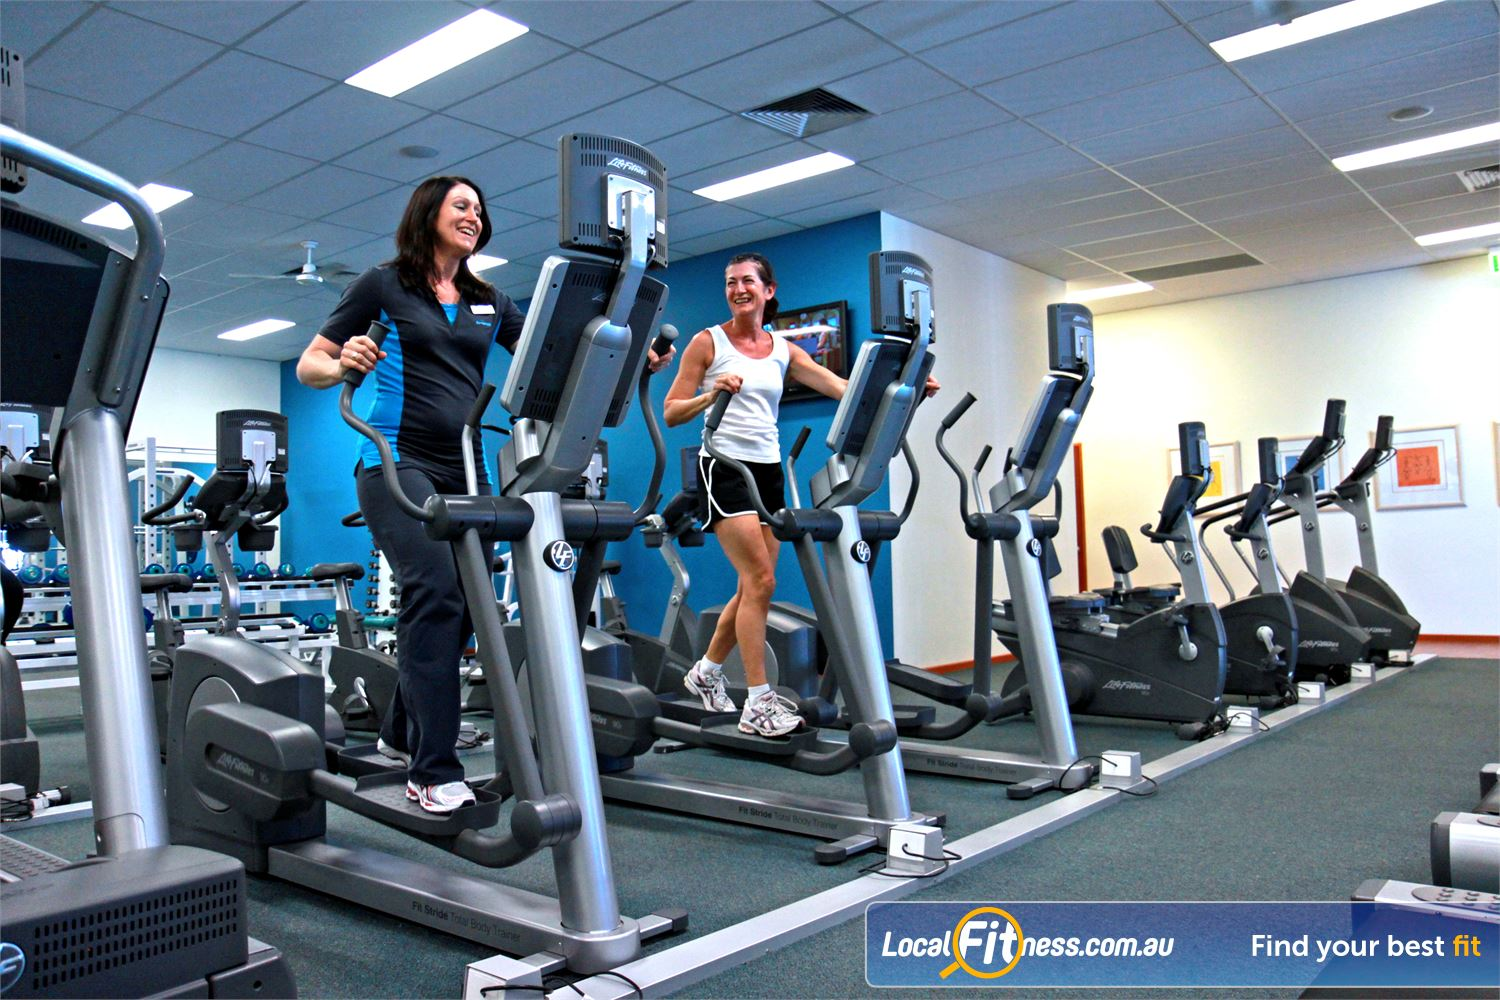 Fernwood Fitness Near Ceres Luxury training with personal entertainment units on each machine.